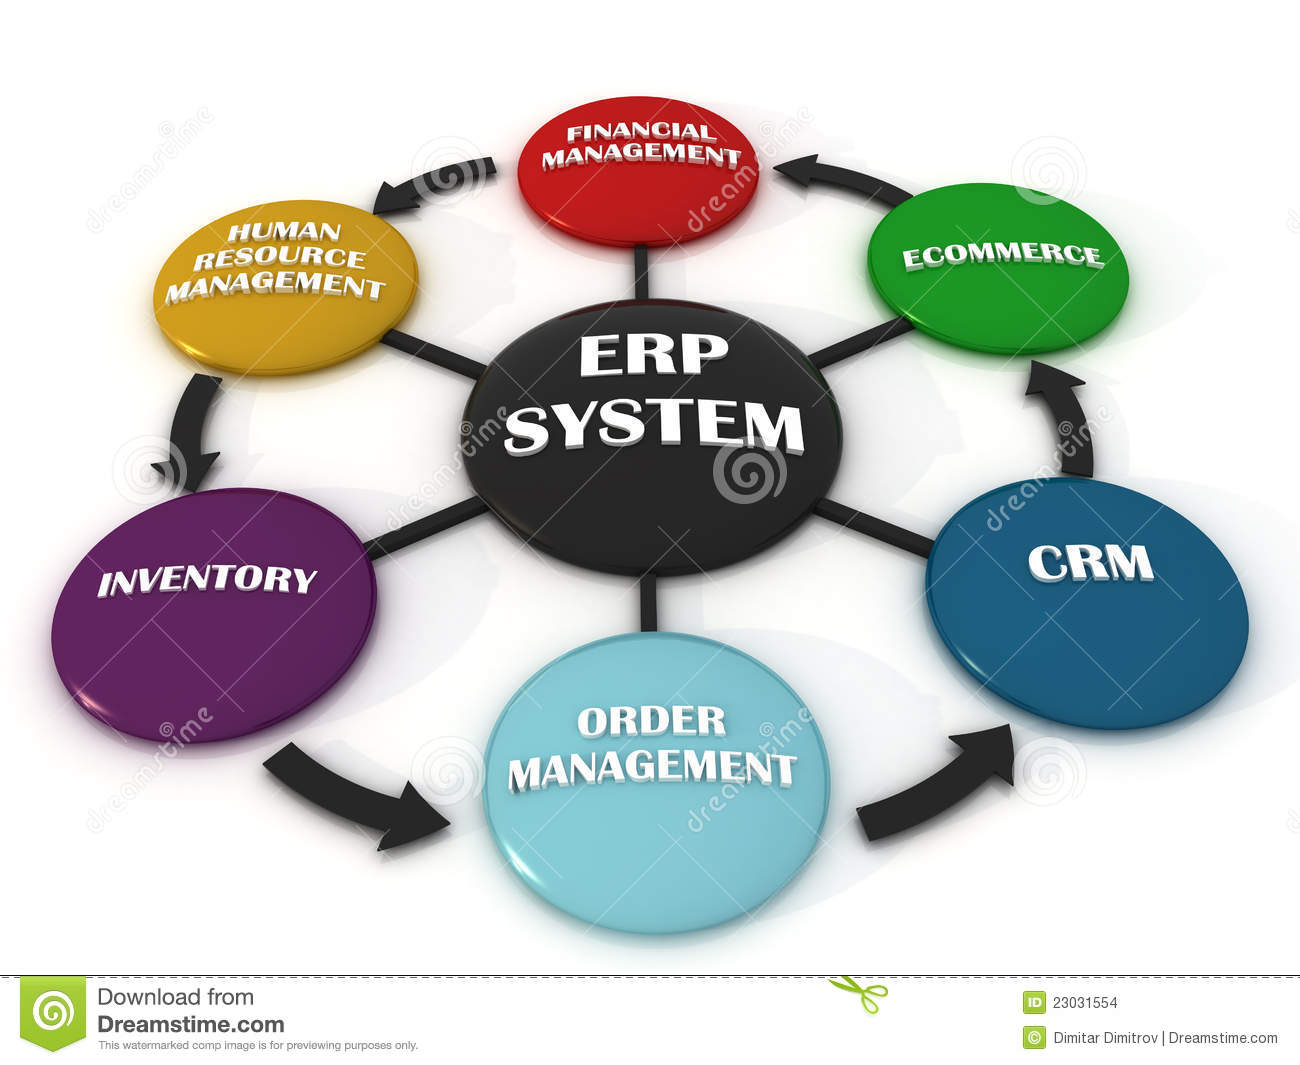 functional area plan information technology systems Management information systems are typically organized around the functional areas of an organization learn about some of the most common applications of management information systems.